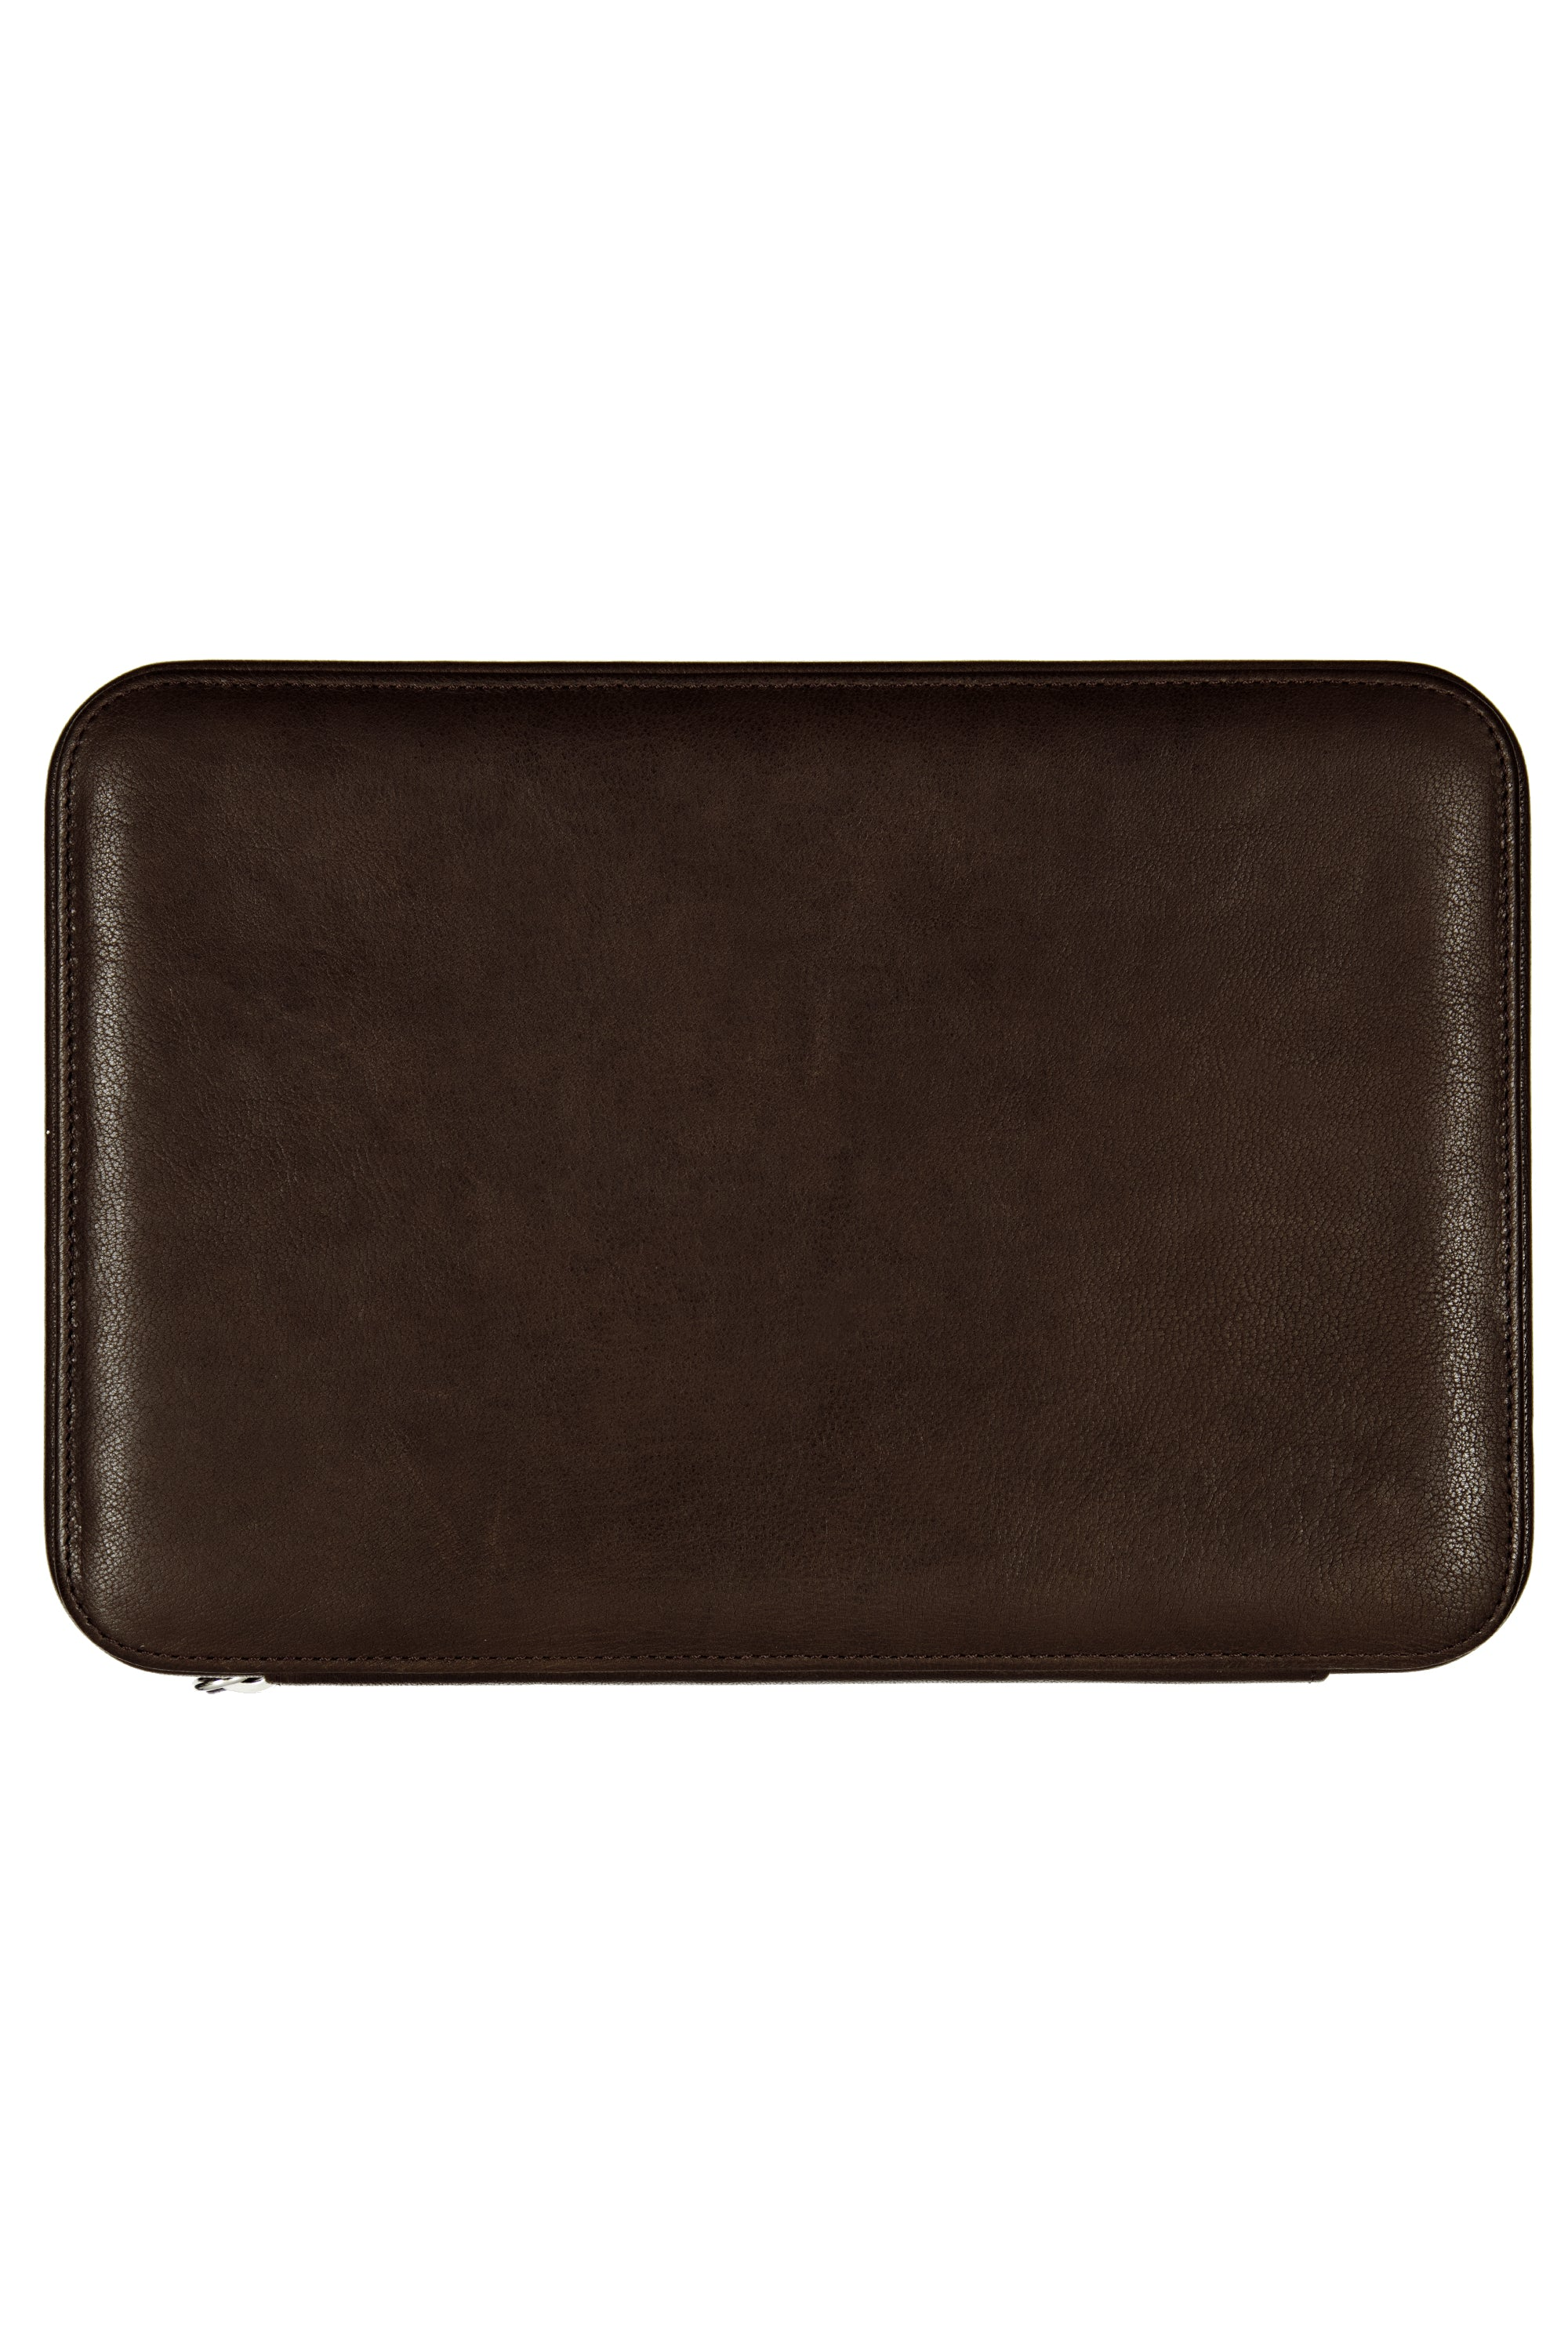 JPM 8-Watch Leather Travel Storage Case in BROWN